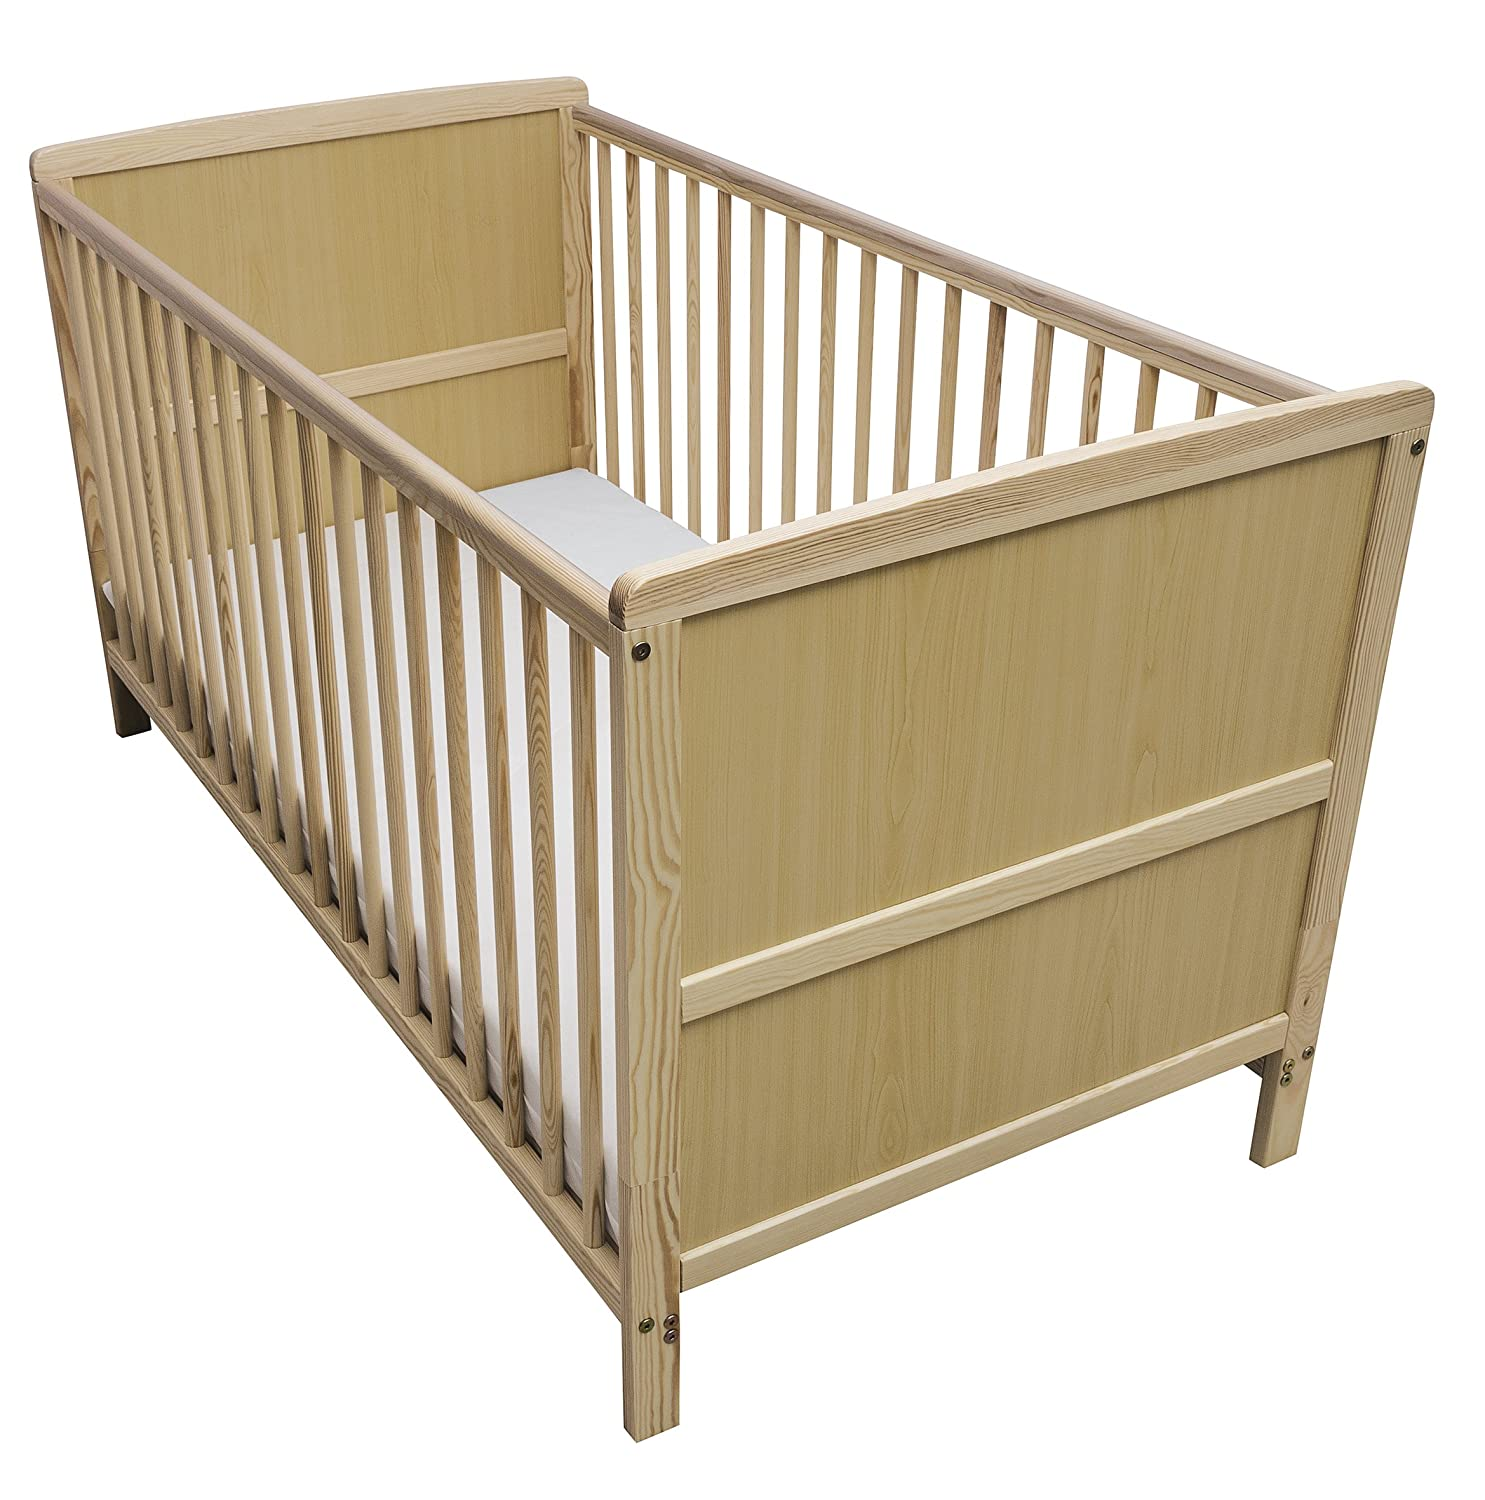 Kinder Valley Solid Pine Wood 2-in-1 Junior Cot Bed, Natural, 144 x 76 x 80 cm 52001